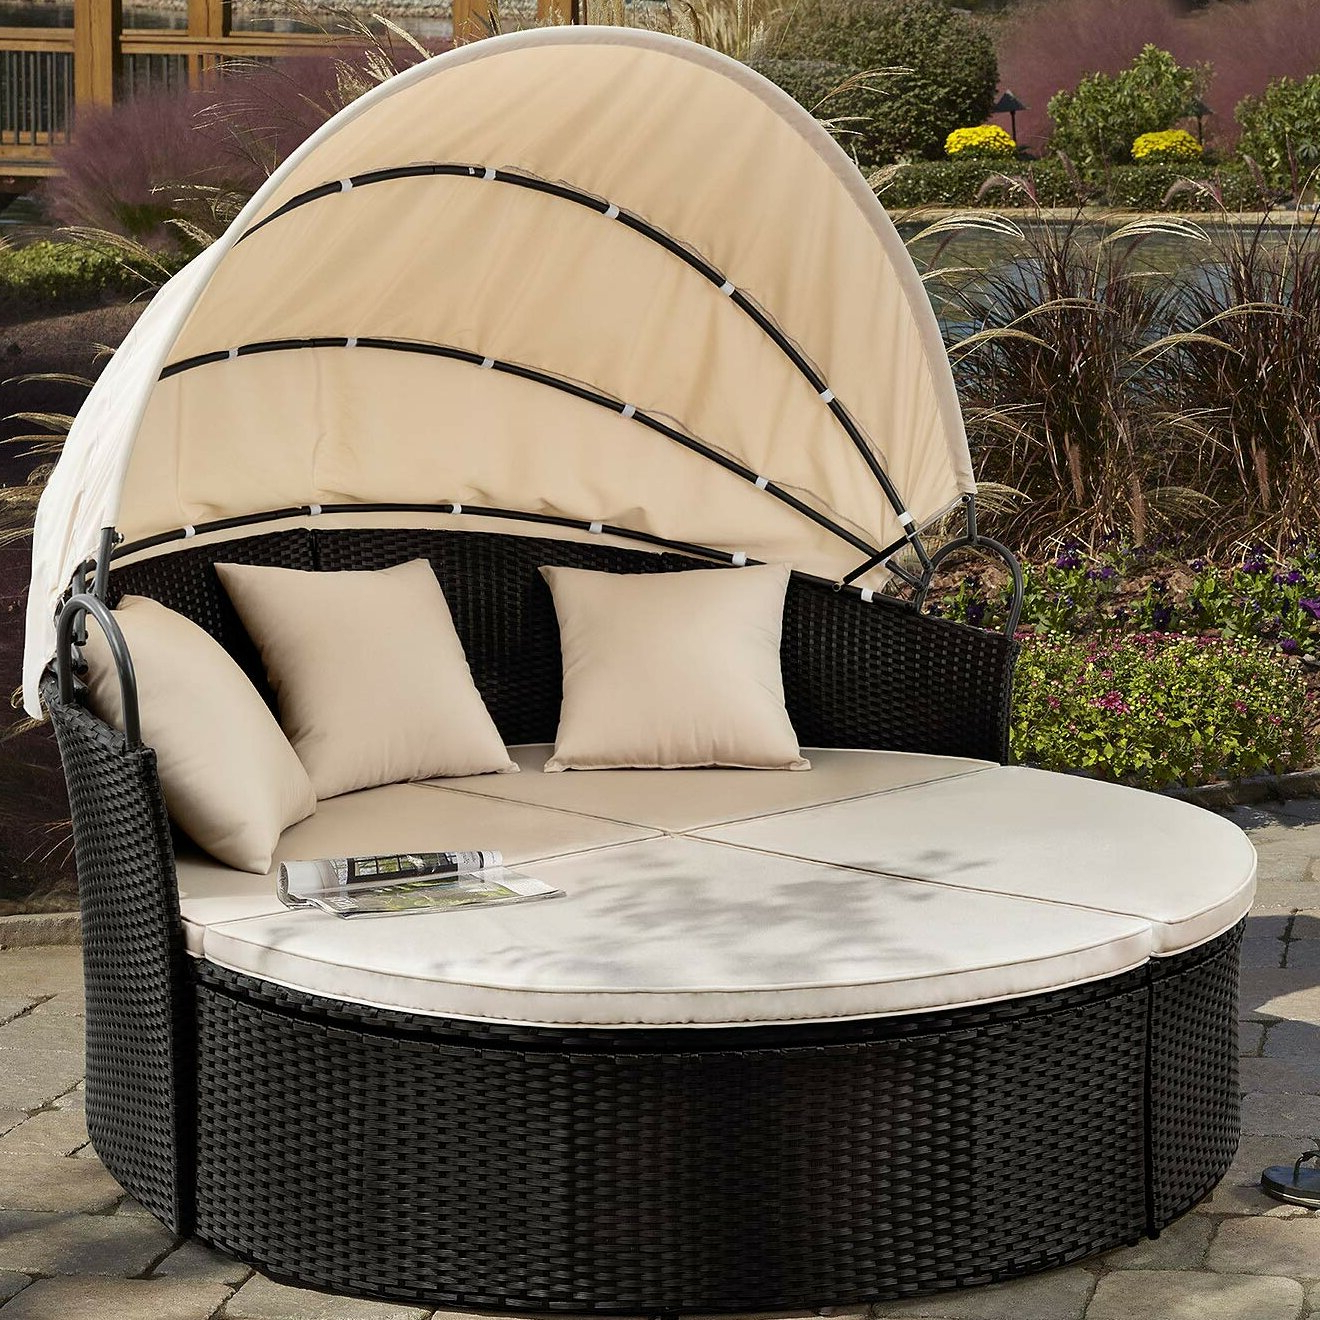 Leiston Round Patio Daybed With Cushions With Regard To Most Recent Beal Patio Daybeds With Cushions (View 13 of 25)